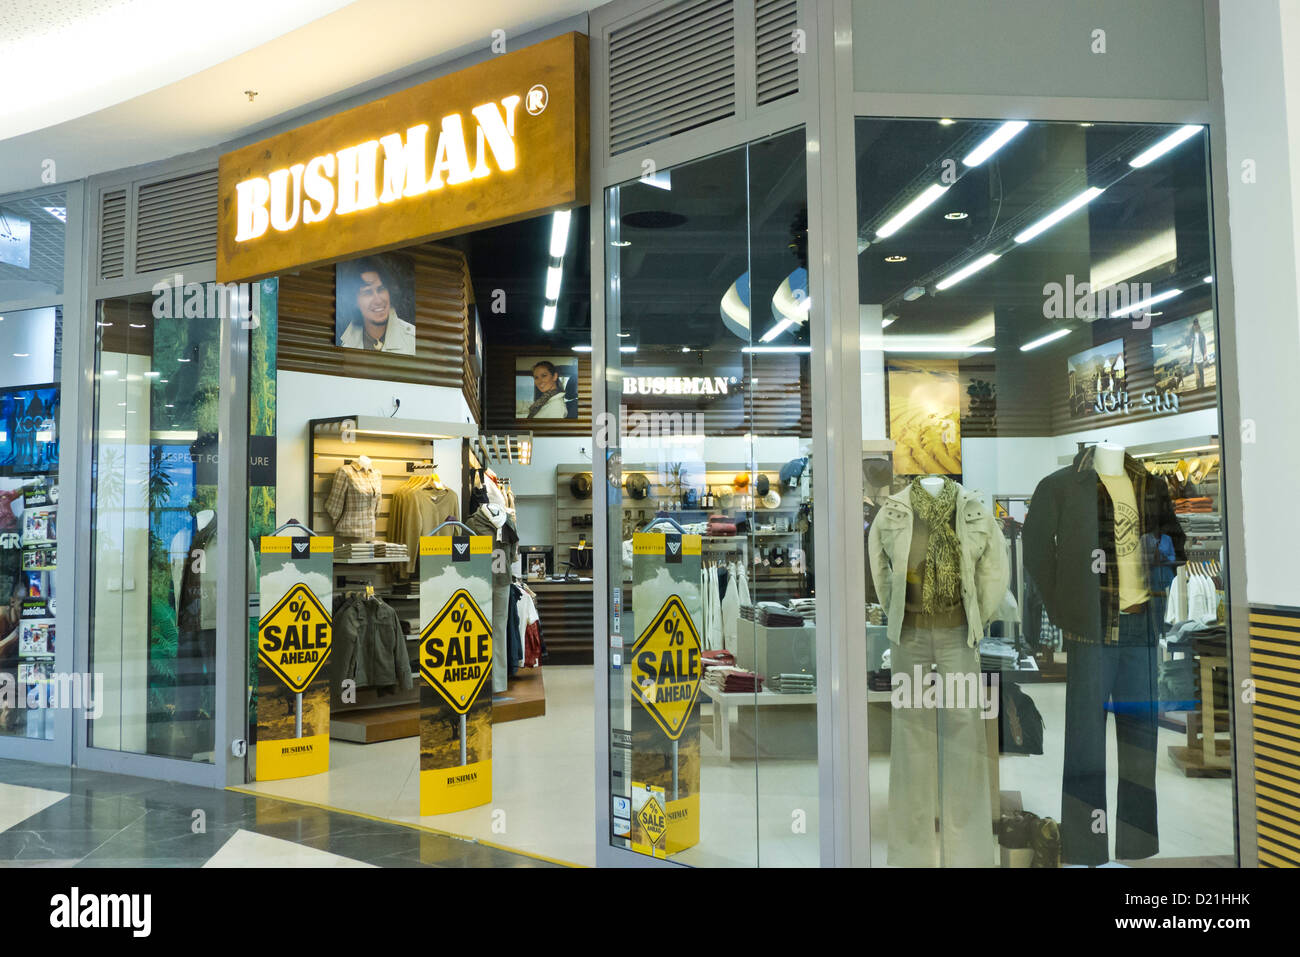 entrance of a Bushman store - Stock Image